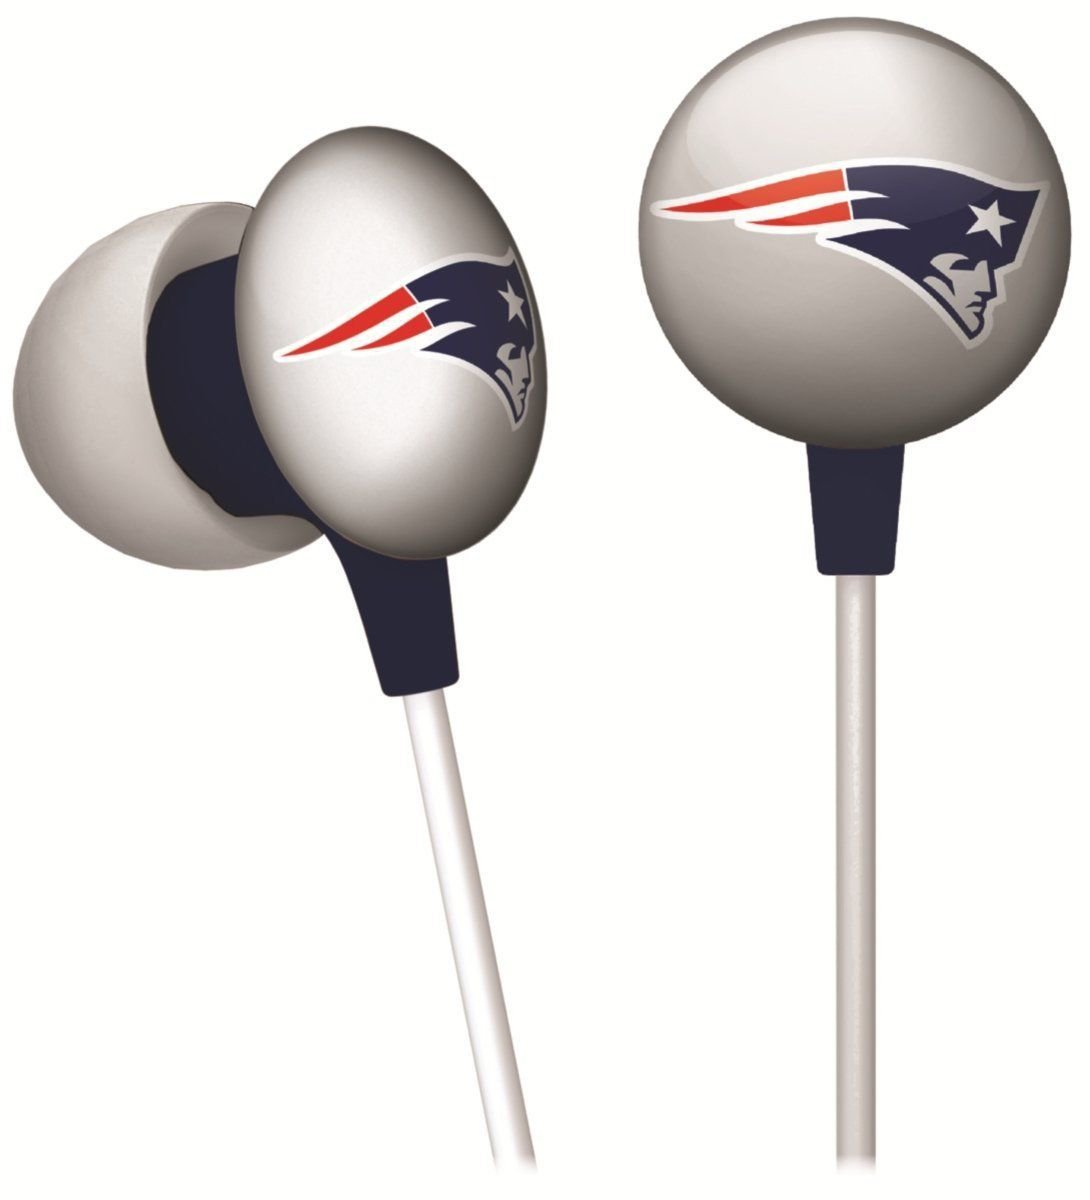 NEW ENGLAND PATRIOTS ear buds for steoreo